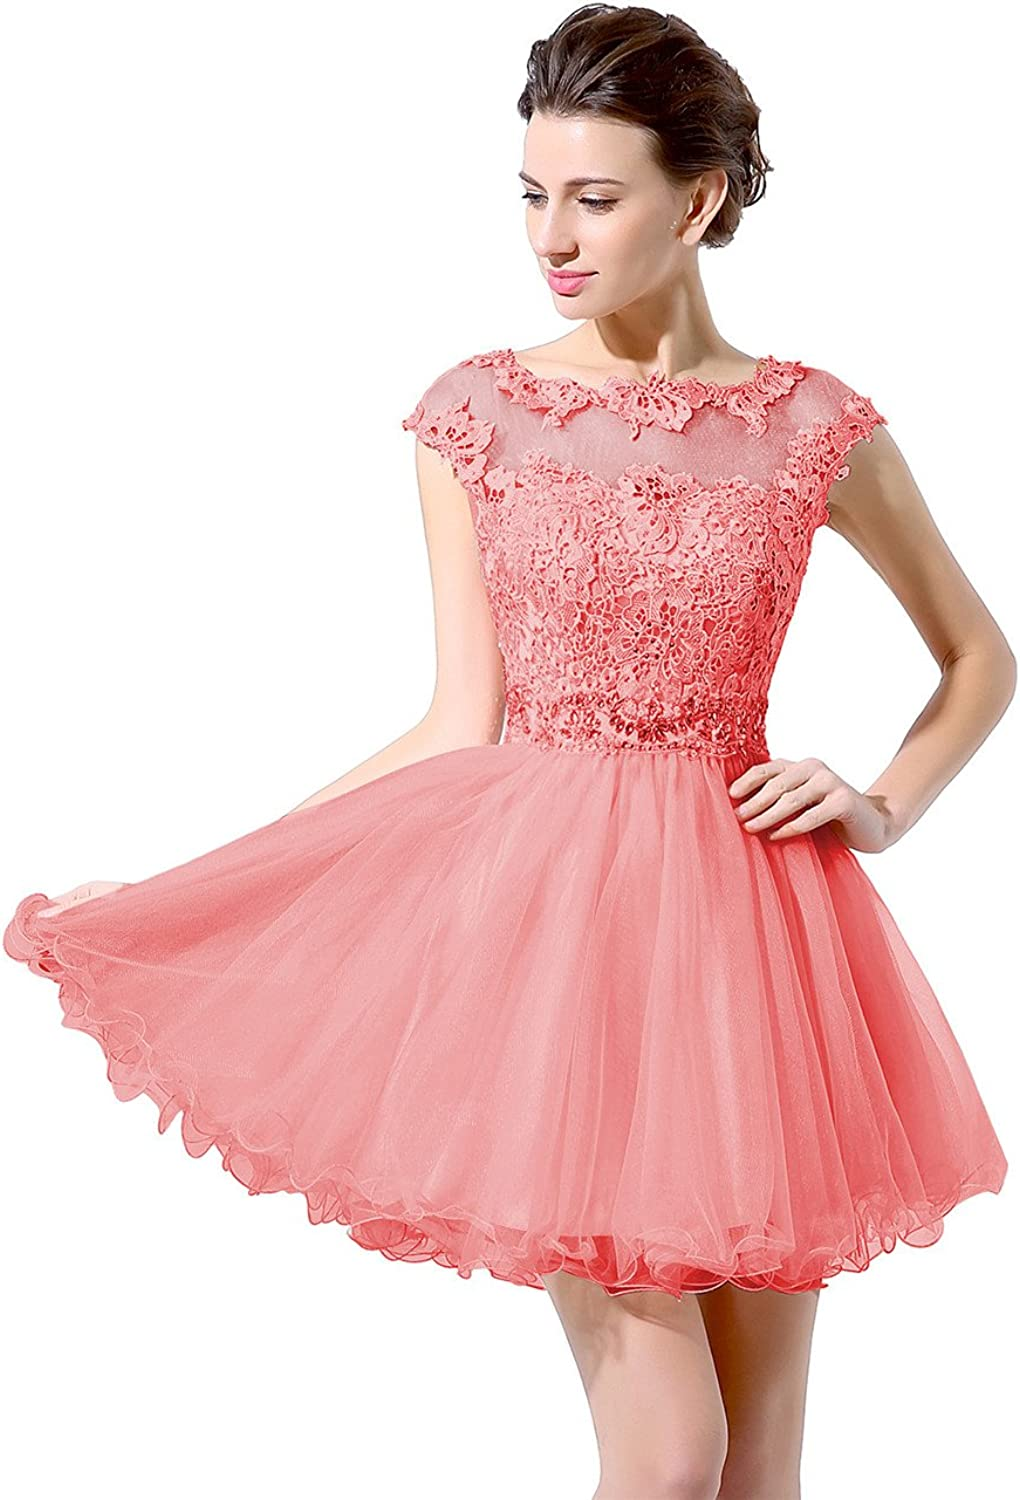 Anmor Women's Short Lace Appliques Cap Sleeves Tulle Homecoming Dress Sequin Prom Cocktail Gown